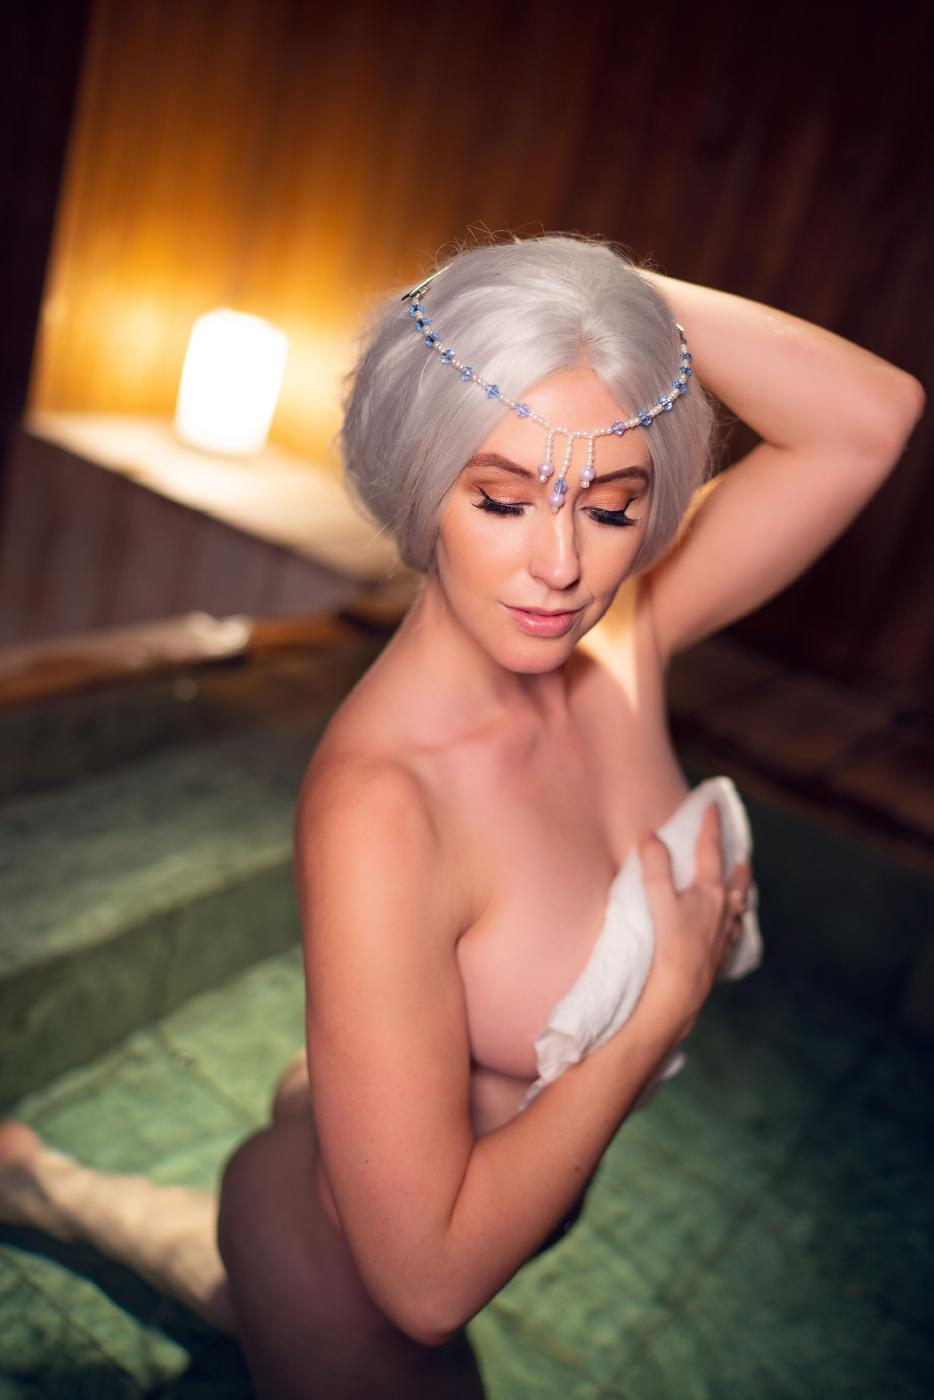 Meg Turney Onlyfans Nude Winter Goddess Onsen Leaked0009